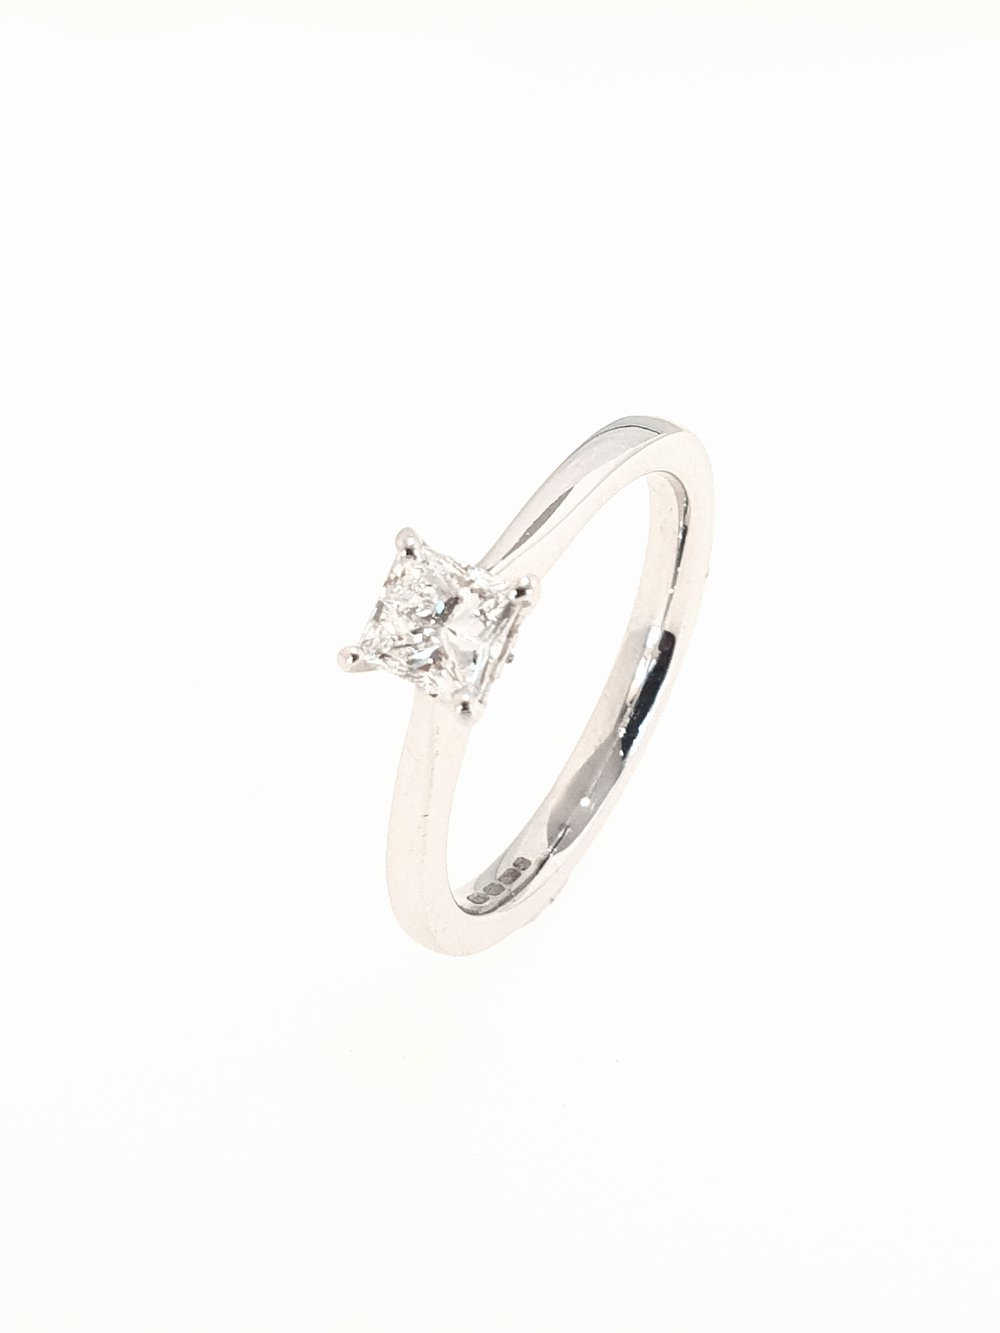 18ct White Gold Diamond Ring, Princess Cut  .50ct, G, Si1  Stock Code: N8433  £2200